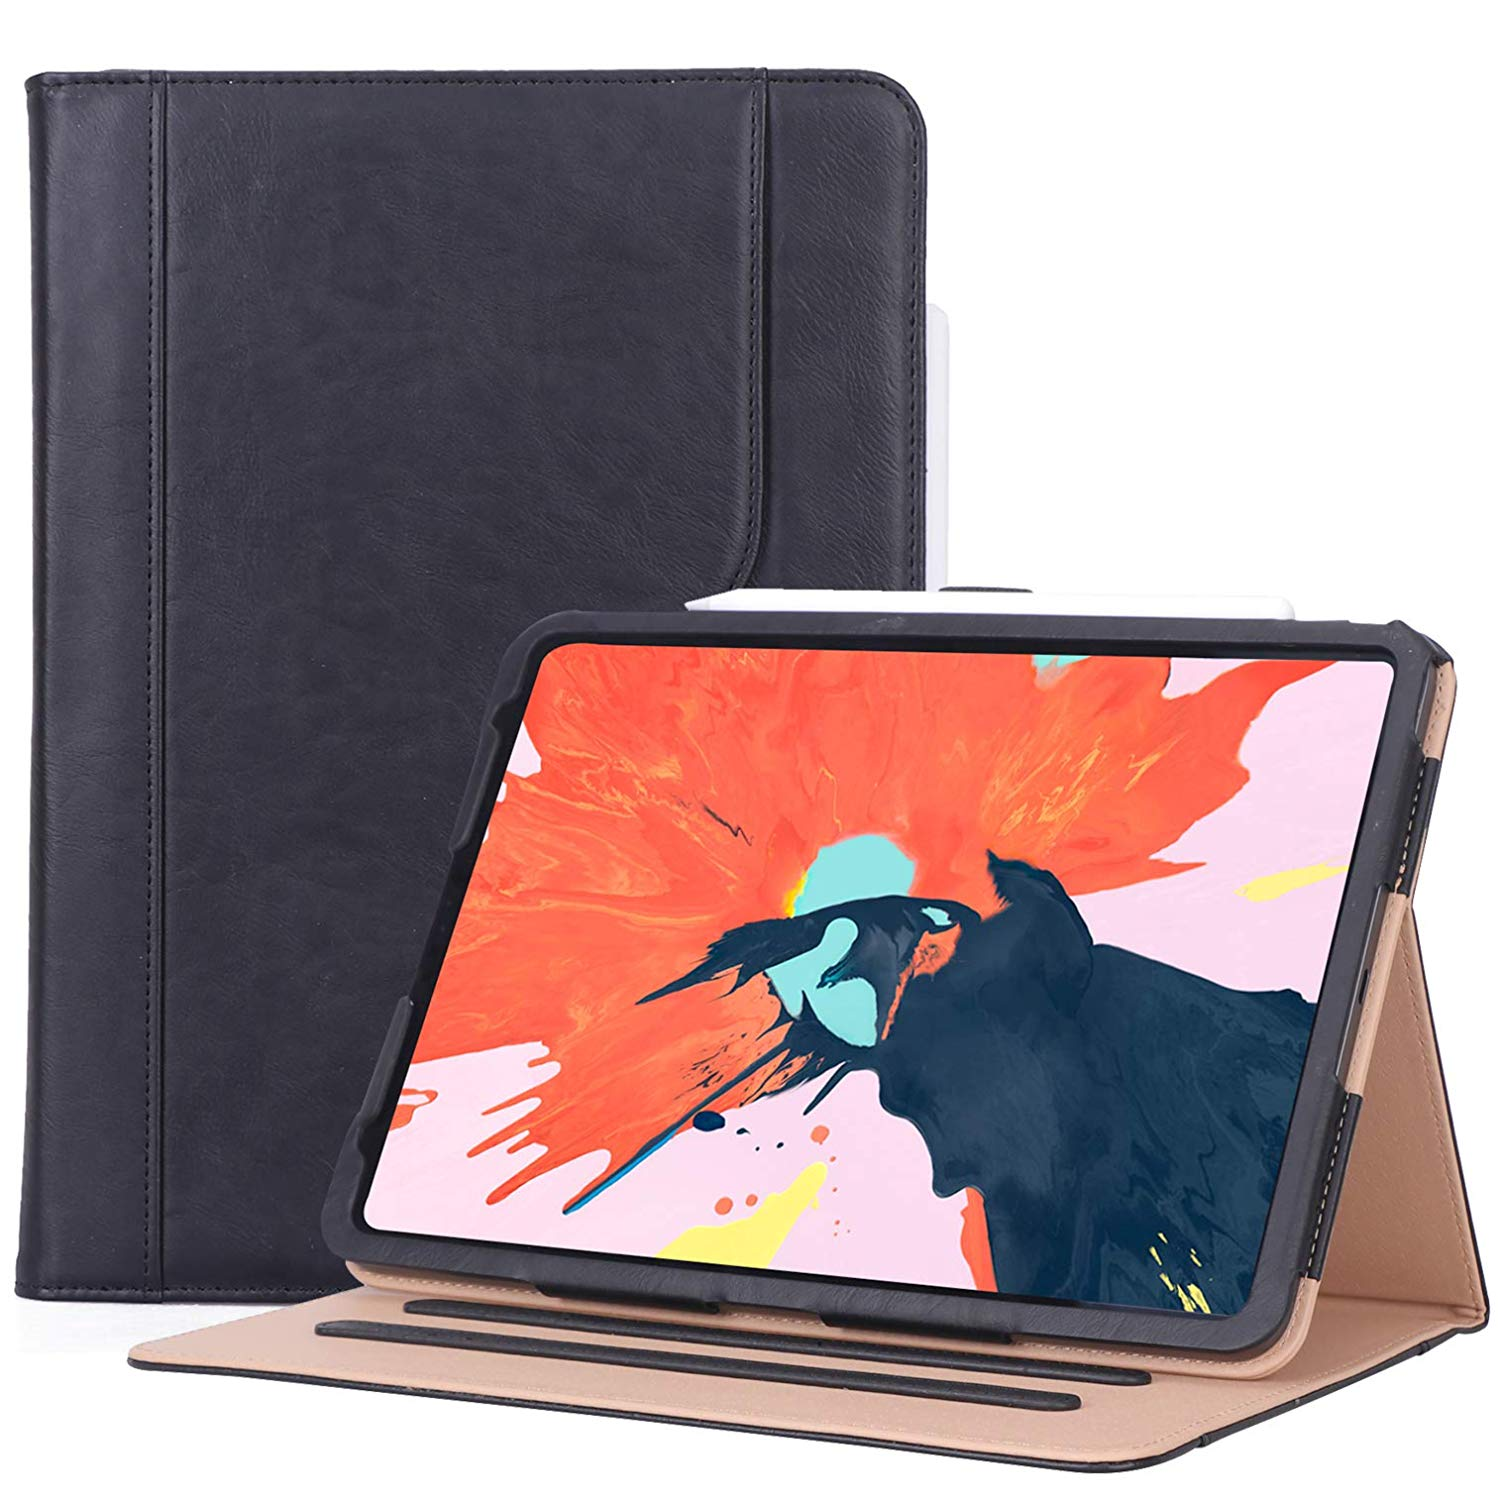 The Pro Case folio for the iPad Pro 11